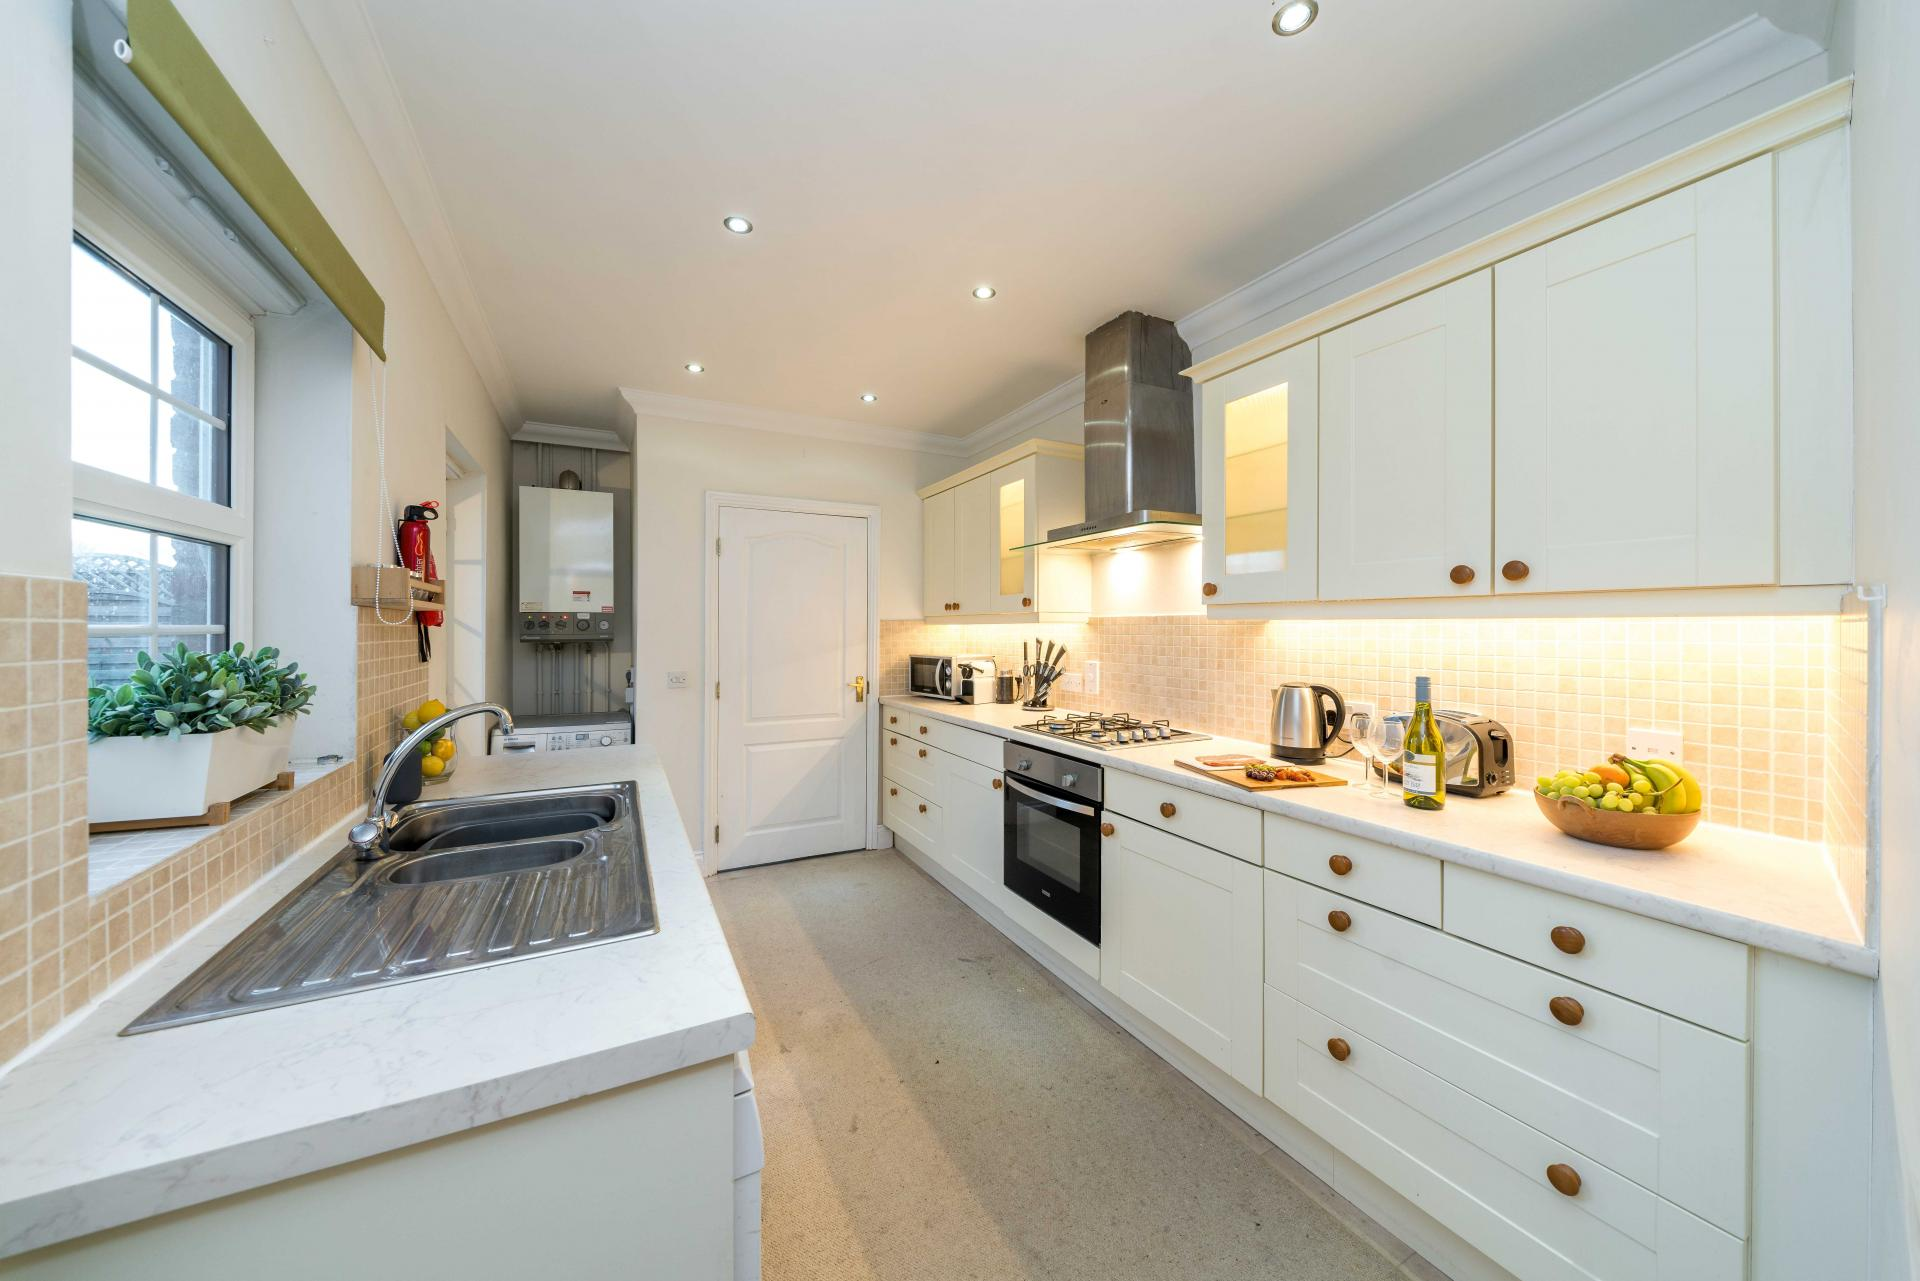 Kitchen at Stowfield House